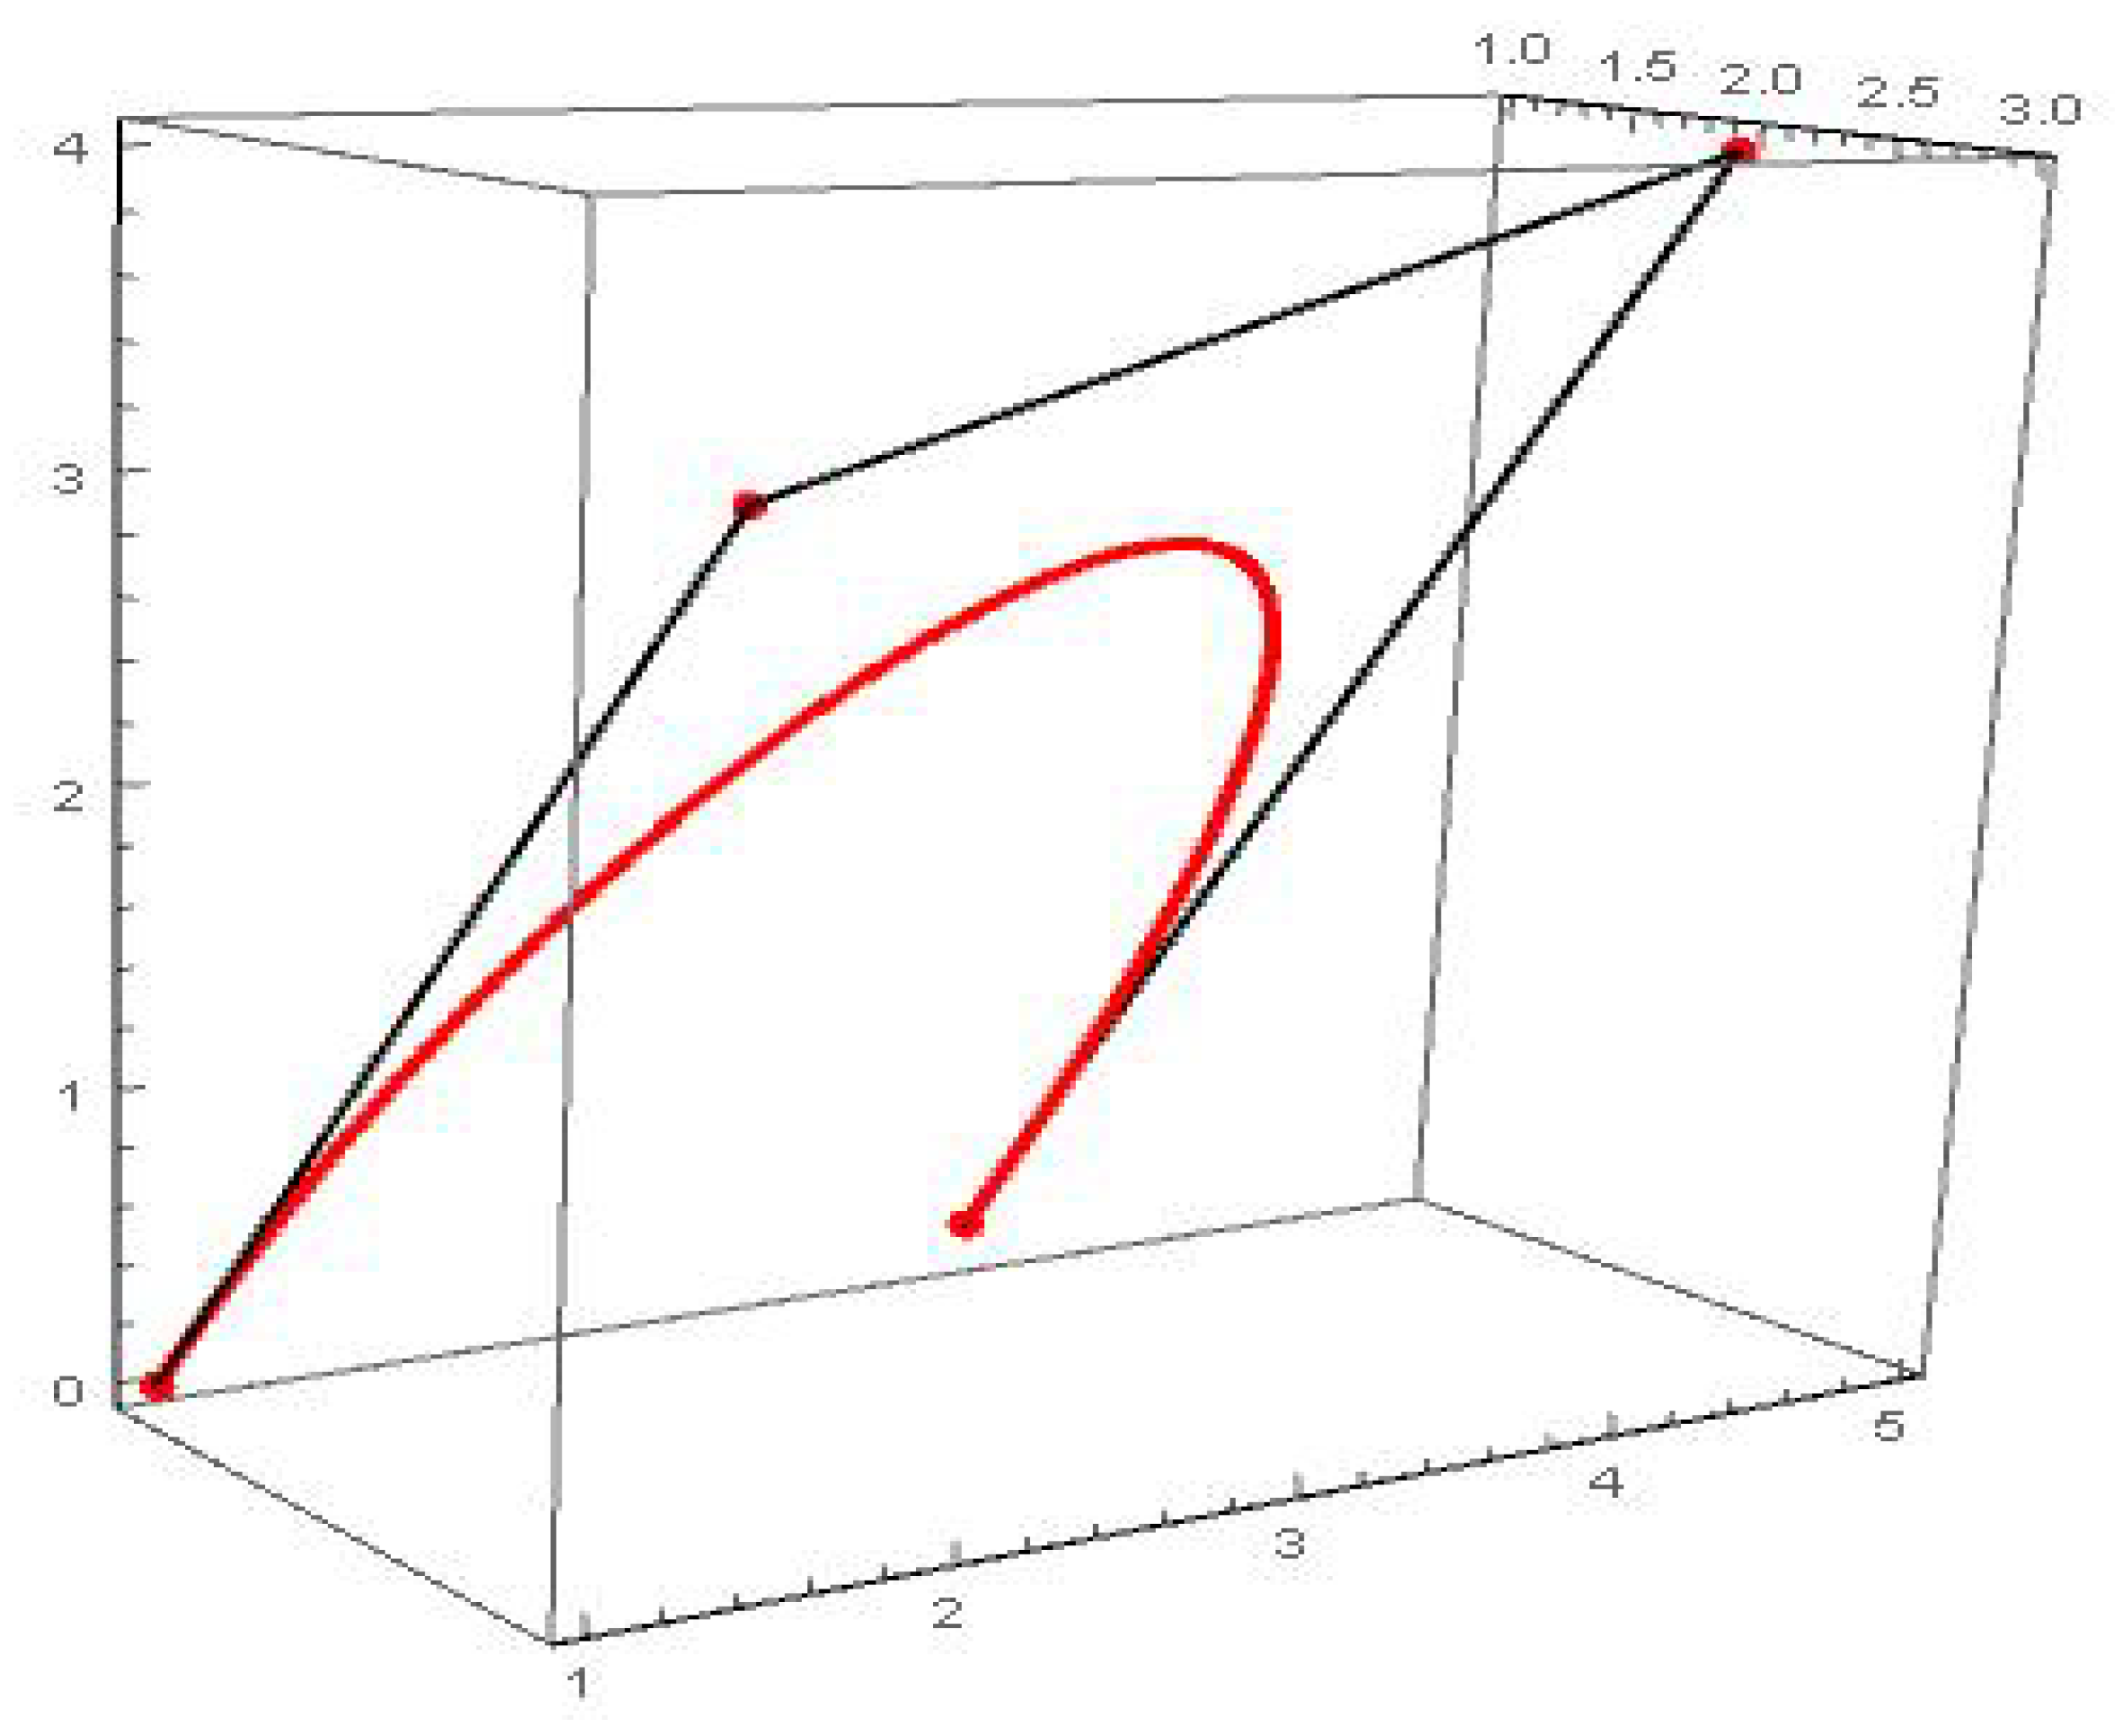 Mathematics | Free Full-Text | Serret-Frenet Frame and Curvatures of